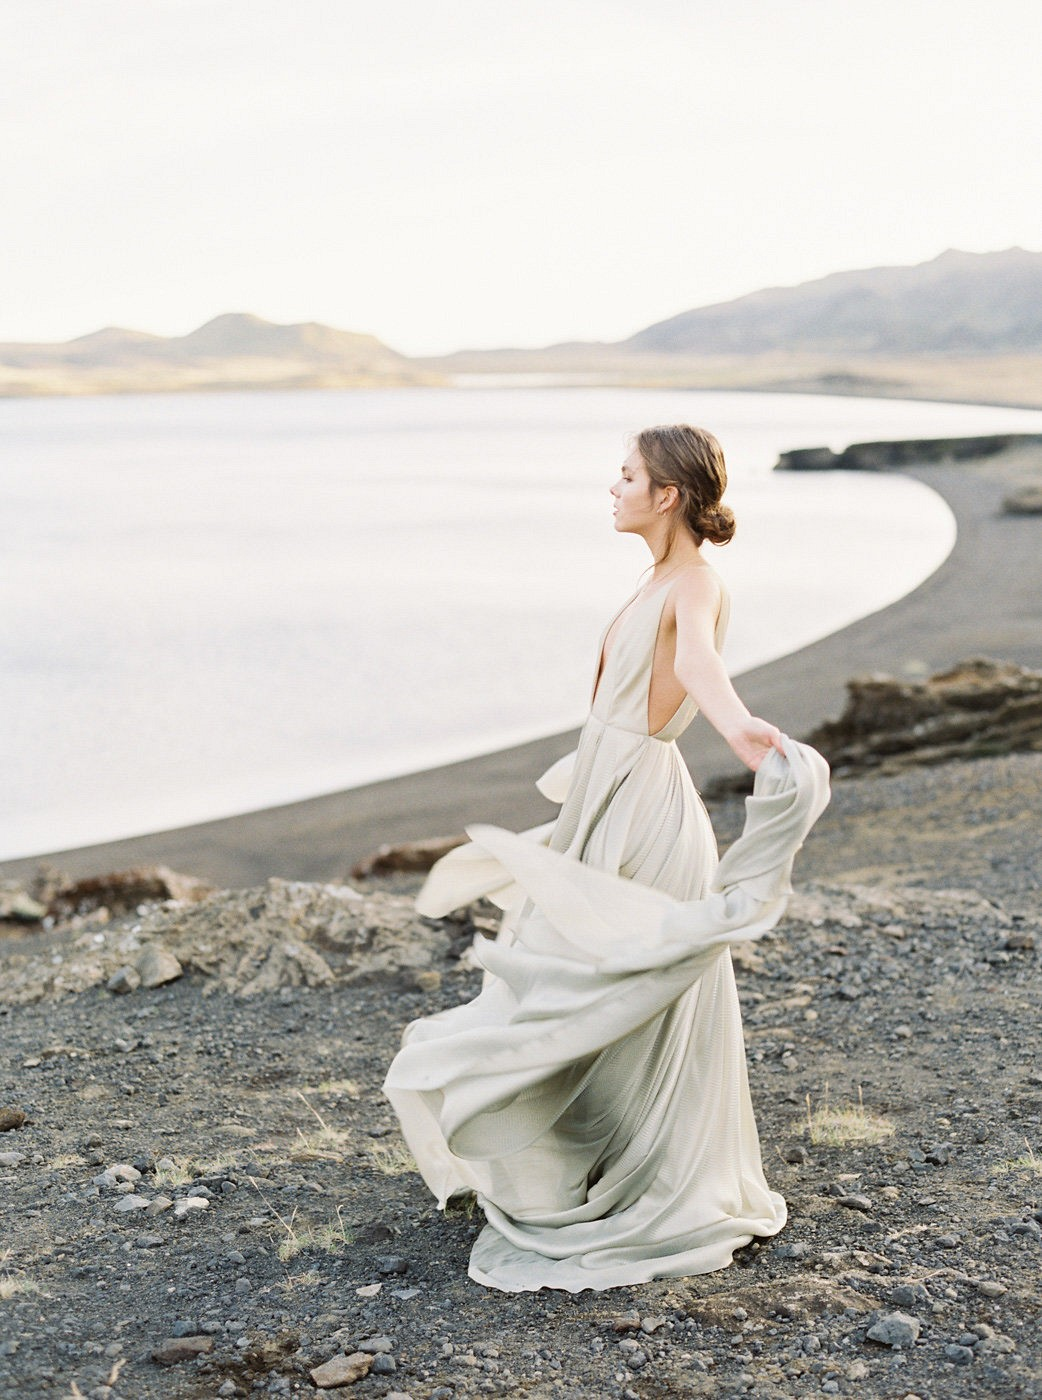 Light Versus Dark: An Emotional Icelandic Bridal Session